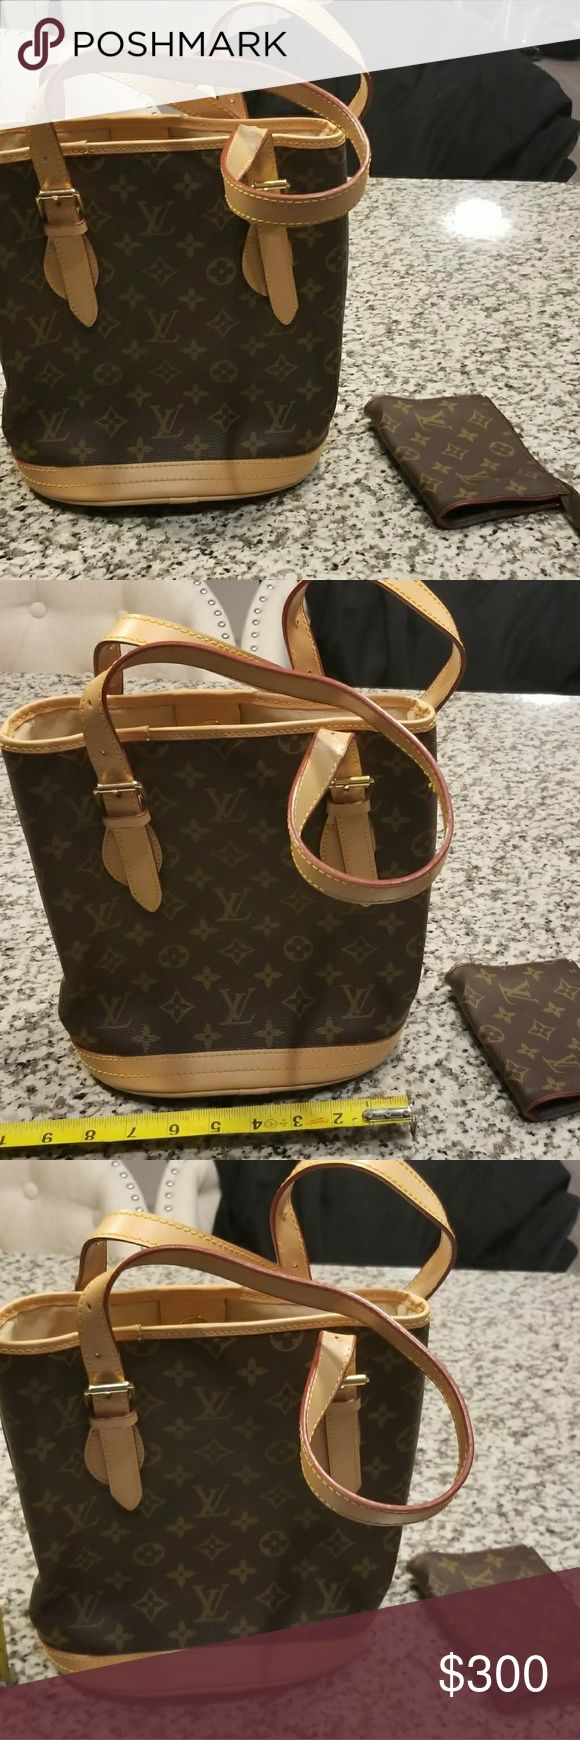 Louis Vuitton Monogram Bucket Bag With Pouch This Louis Vuitton Bucket Bag with Pouch and it has never been used. It's clean and has been in climate controlled storage. Louis Vuitton Bags Shoulder Bags